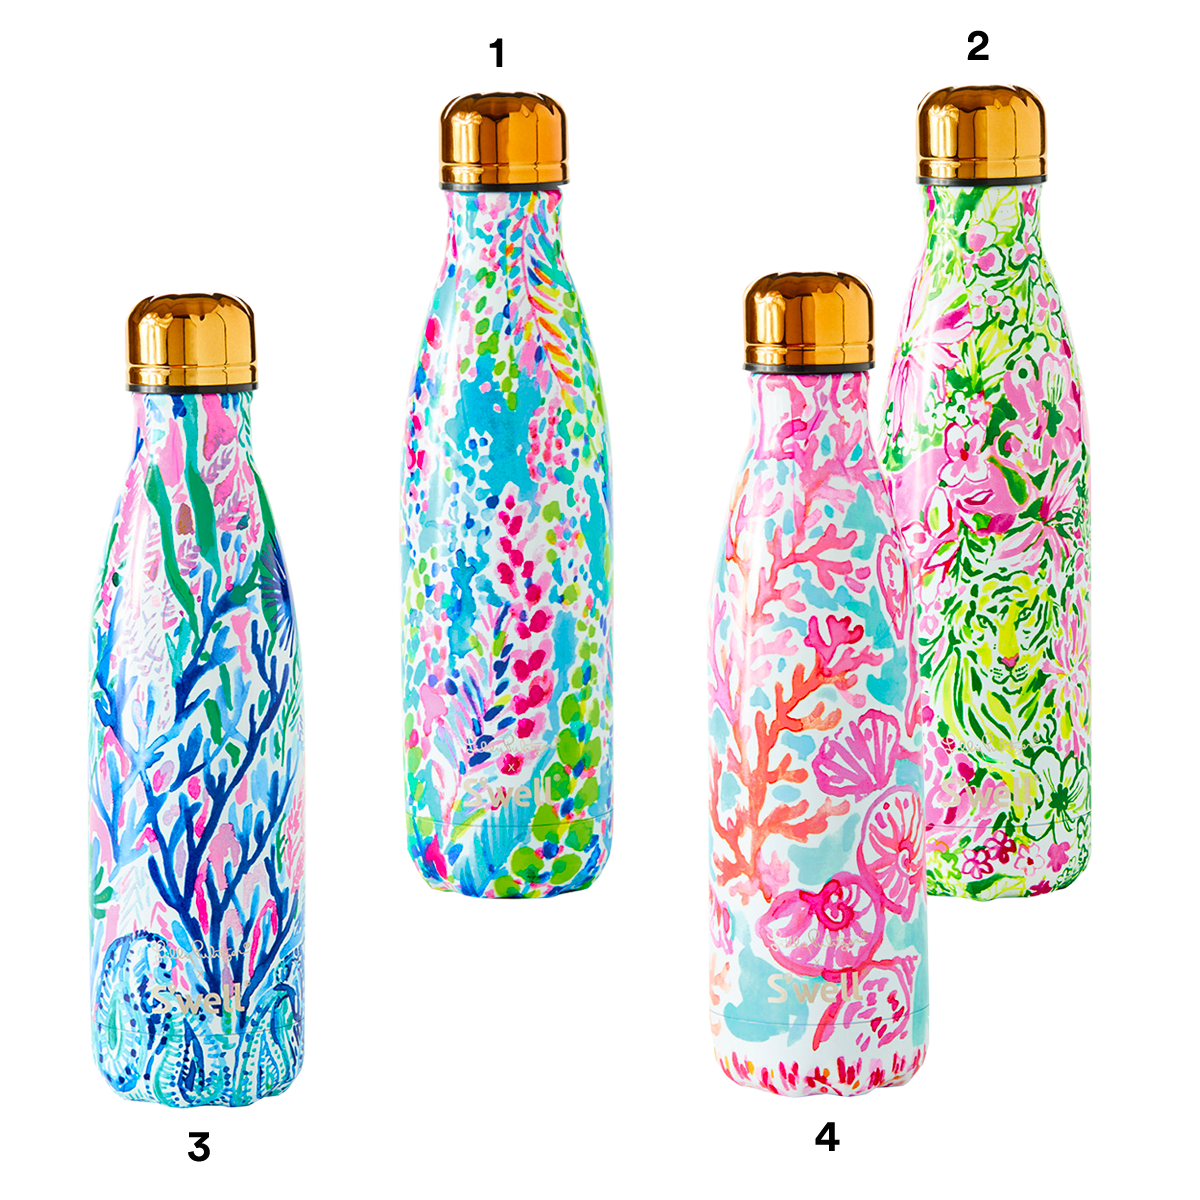 1) LILLY PULITZER Catch the Wave Swell Bottle. 2) LILLY PULITZER In the Groves Swell Bottle. 3) LILLY PULITZER Race to the Wave Swell Bottle. 4) LILLY PULITZER Shell We Dance Swell Bottle.